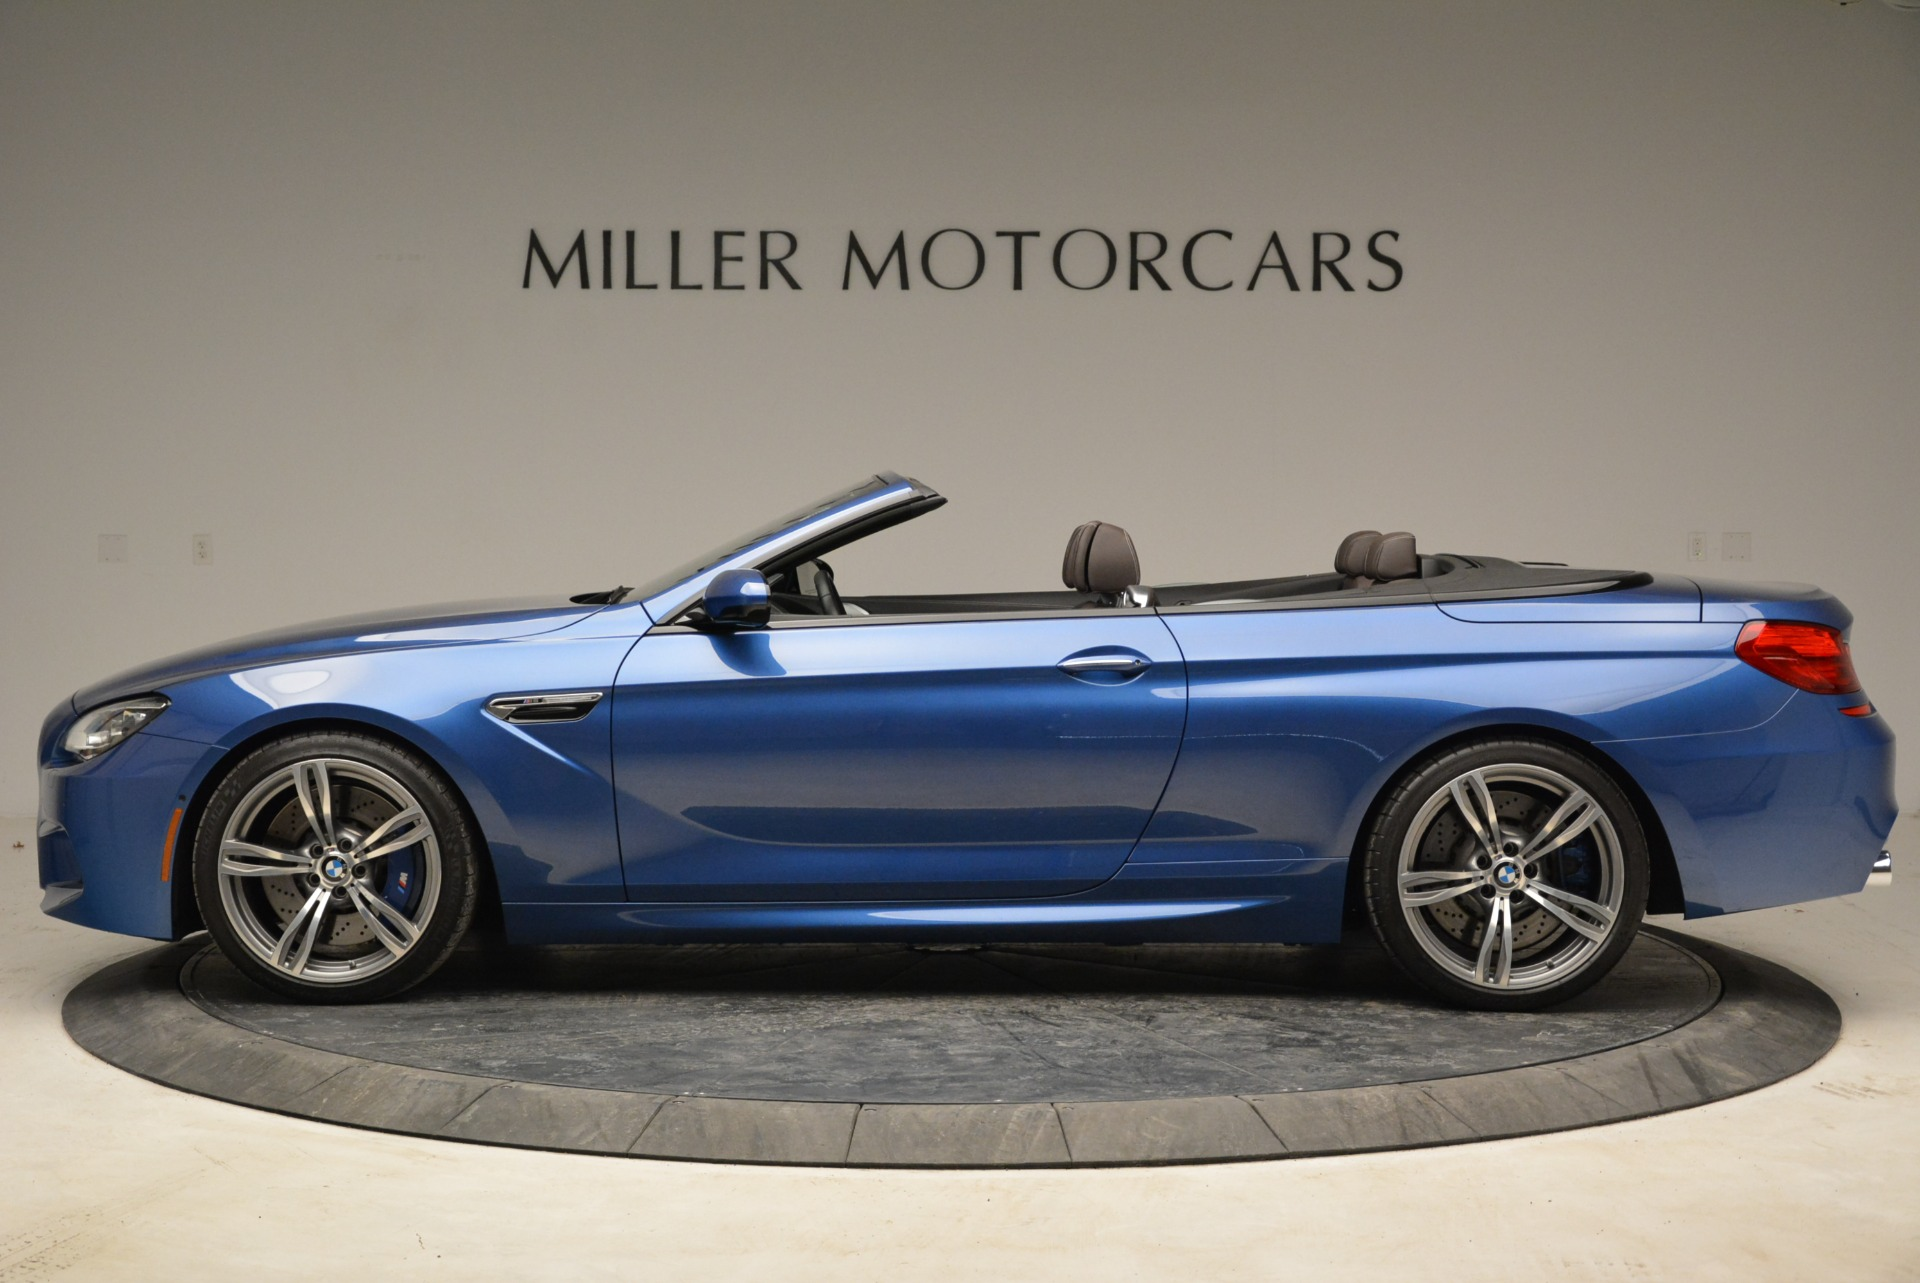 Pre Owned 2013 Bmw M6 Convertible For Sale Miller Motorcars Stock 7315